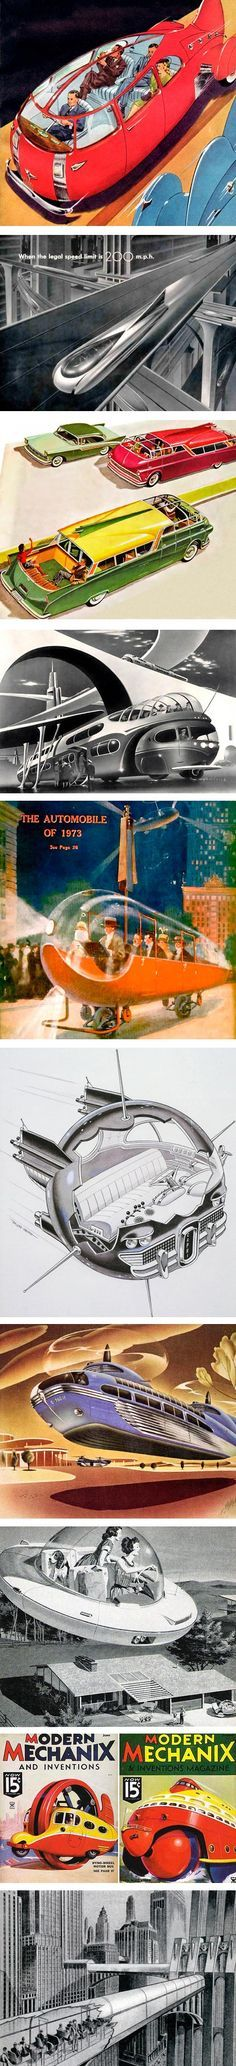 Retro Future Transportation Illustrations. The Automobile Of 1973 was nowhere to be seen by the time I was born.